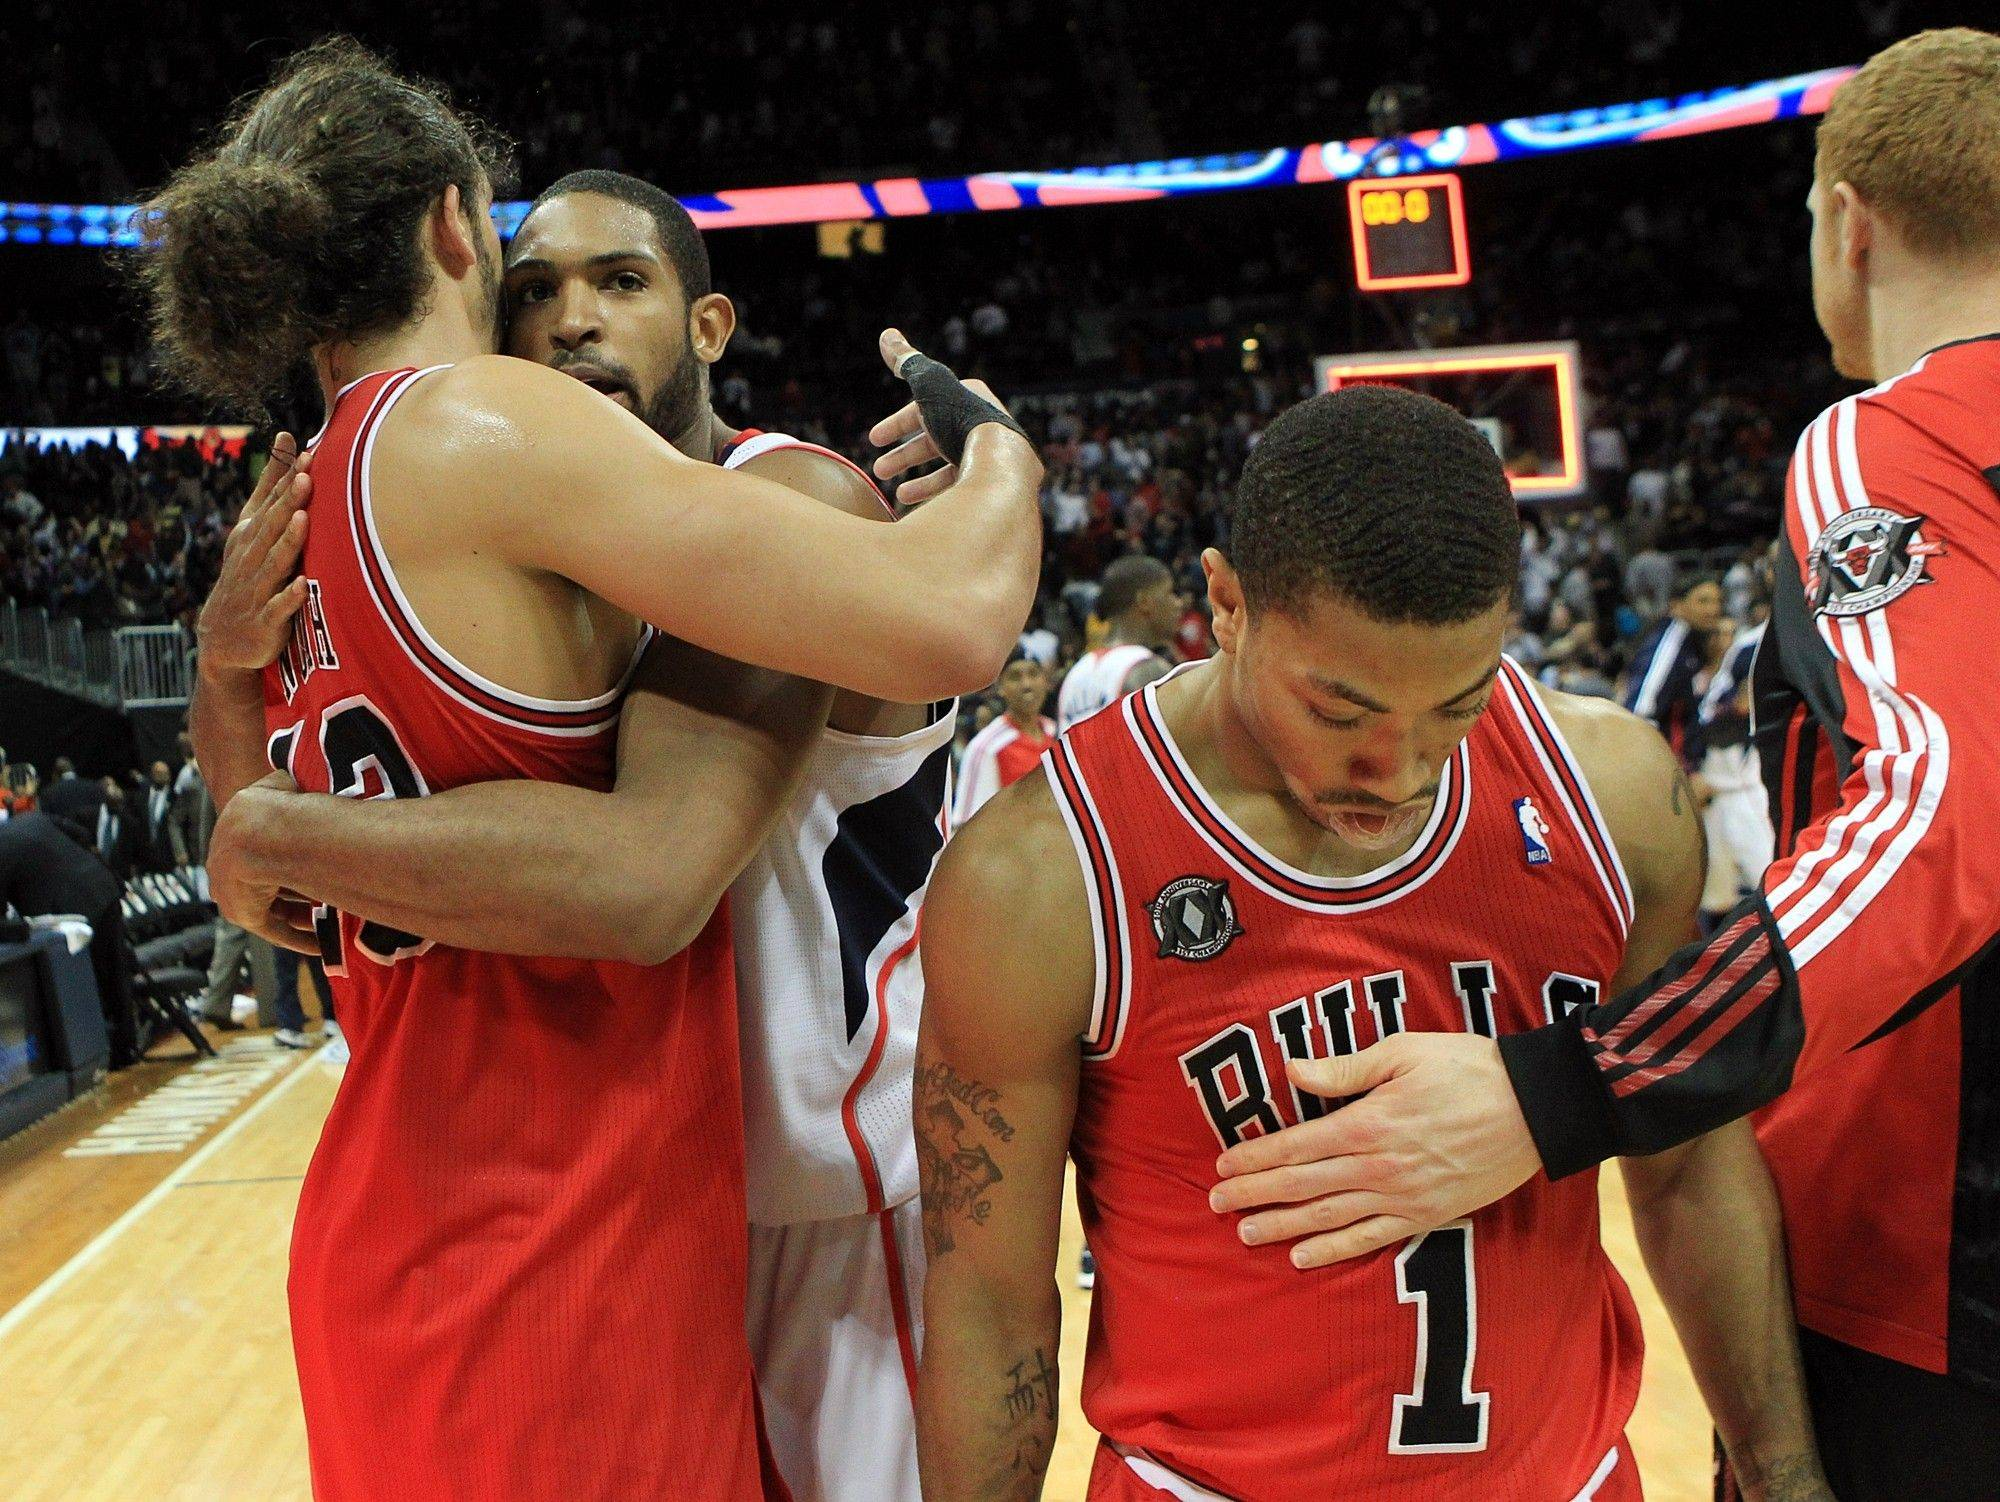 Chicago Bulls' Derrick Rose, right, walks off the court as Atlanta Hawks center Al Horford, who scored a game high 31-points, hugs Bulls' Joakim Noah, left, after an 83-30 Hawks victory in an NBA basketball game Wednesday, March 2, 2011, in Atlanta.